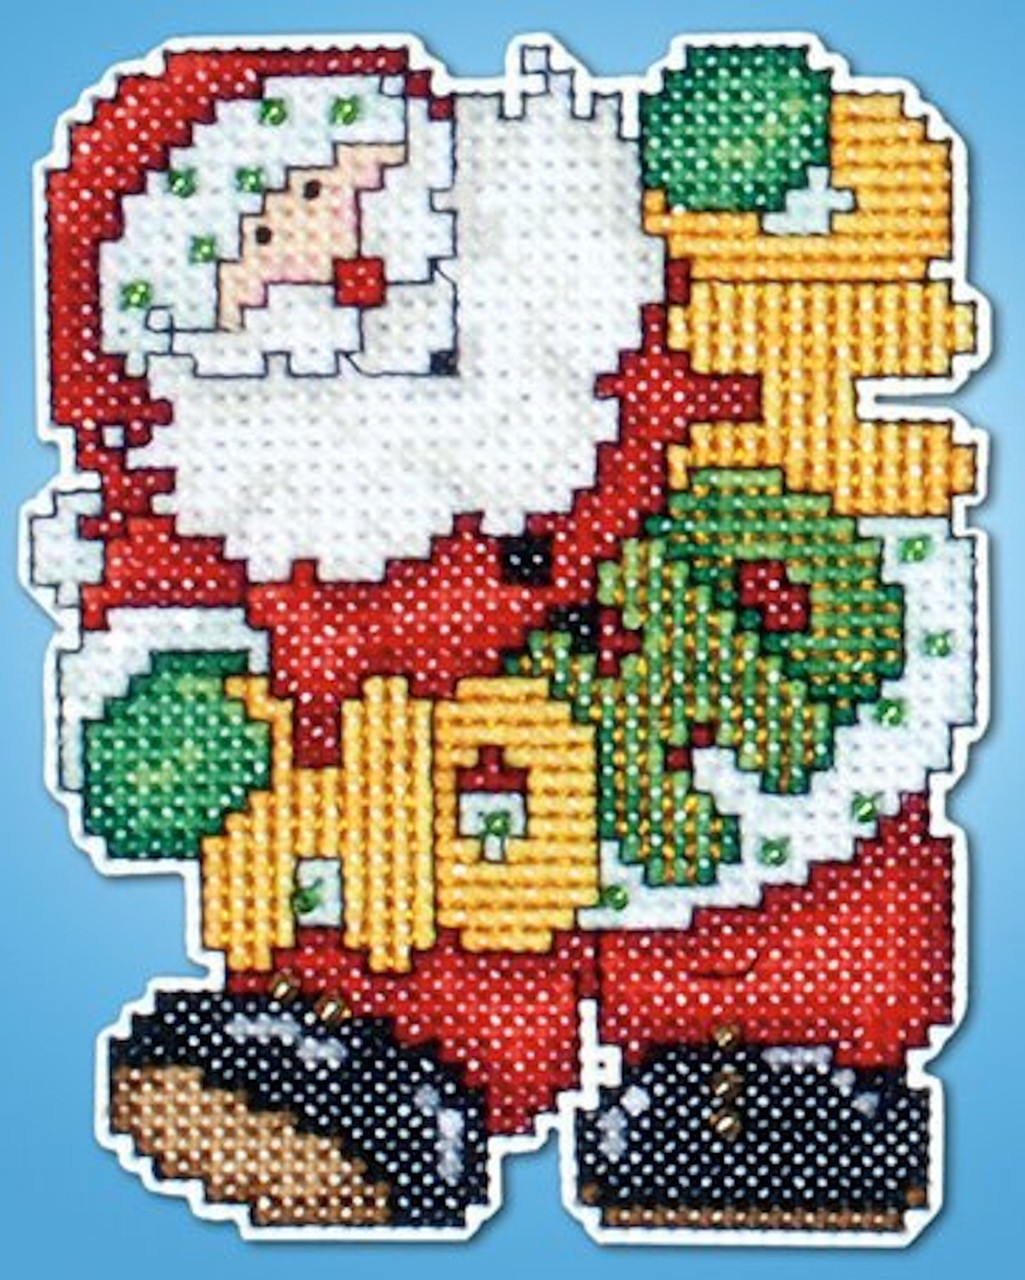 Design Works - HO, HO, HO Santa Ornament